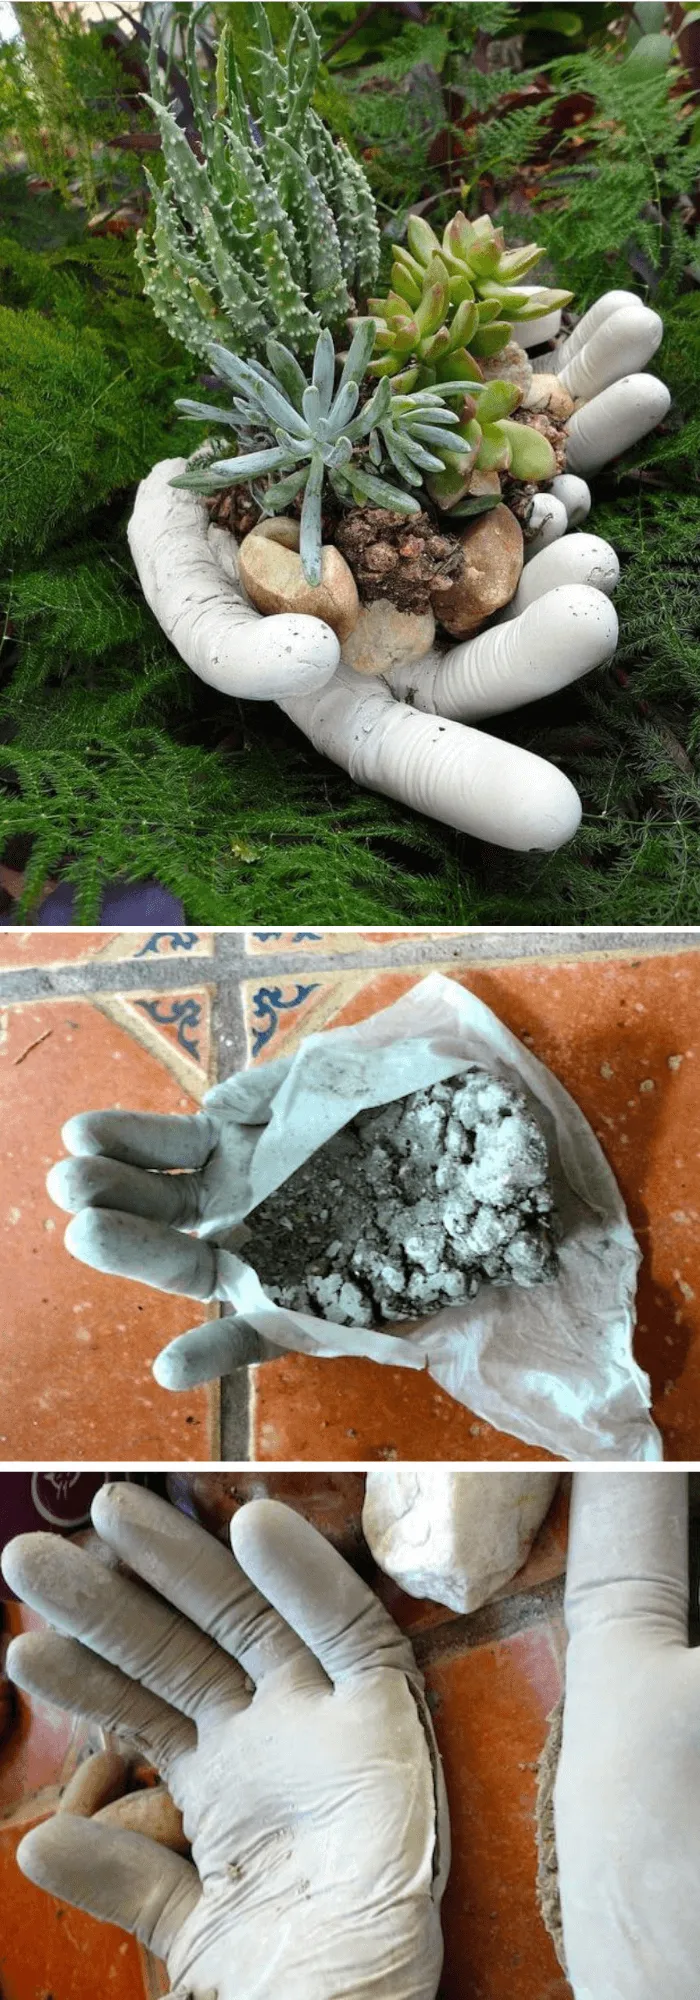 15+ Cheap Garden Cement Projects You Will Enjoy This Summer 2019